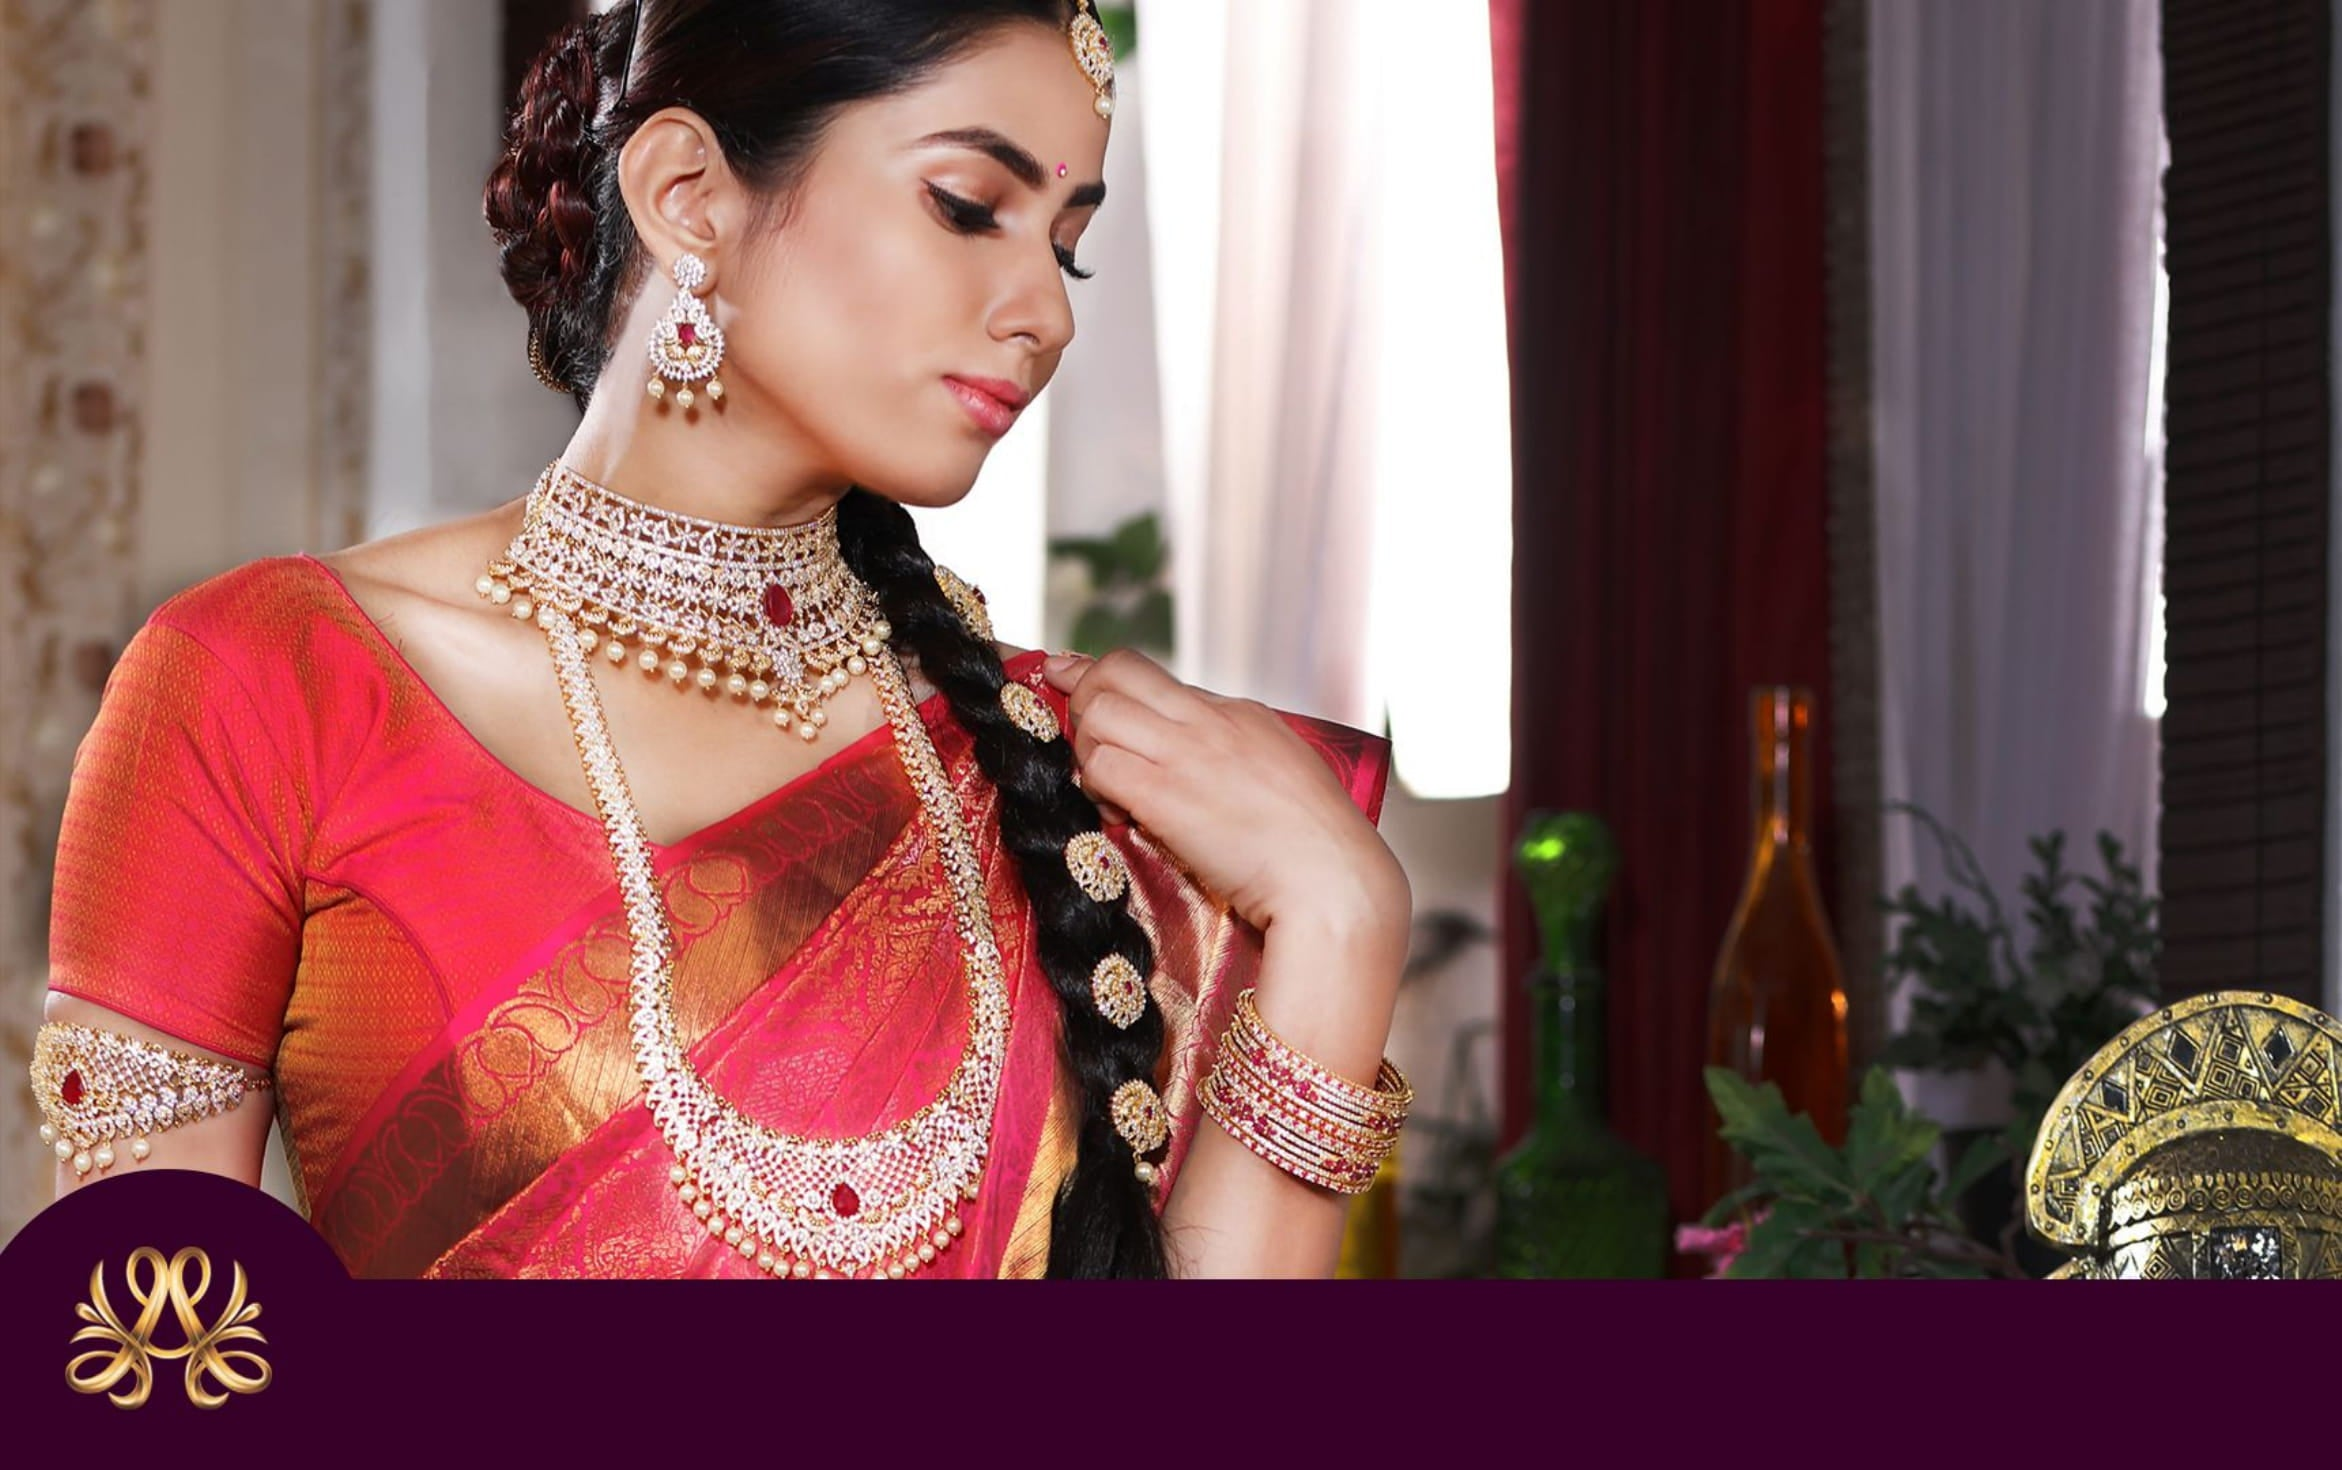 look book page 14 indian women model wearing red saari wearing festive jewellery